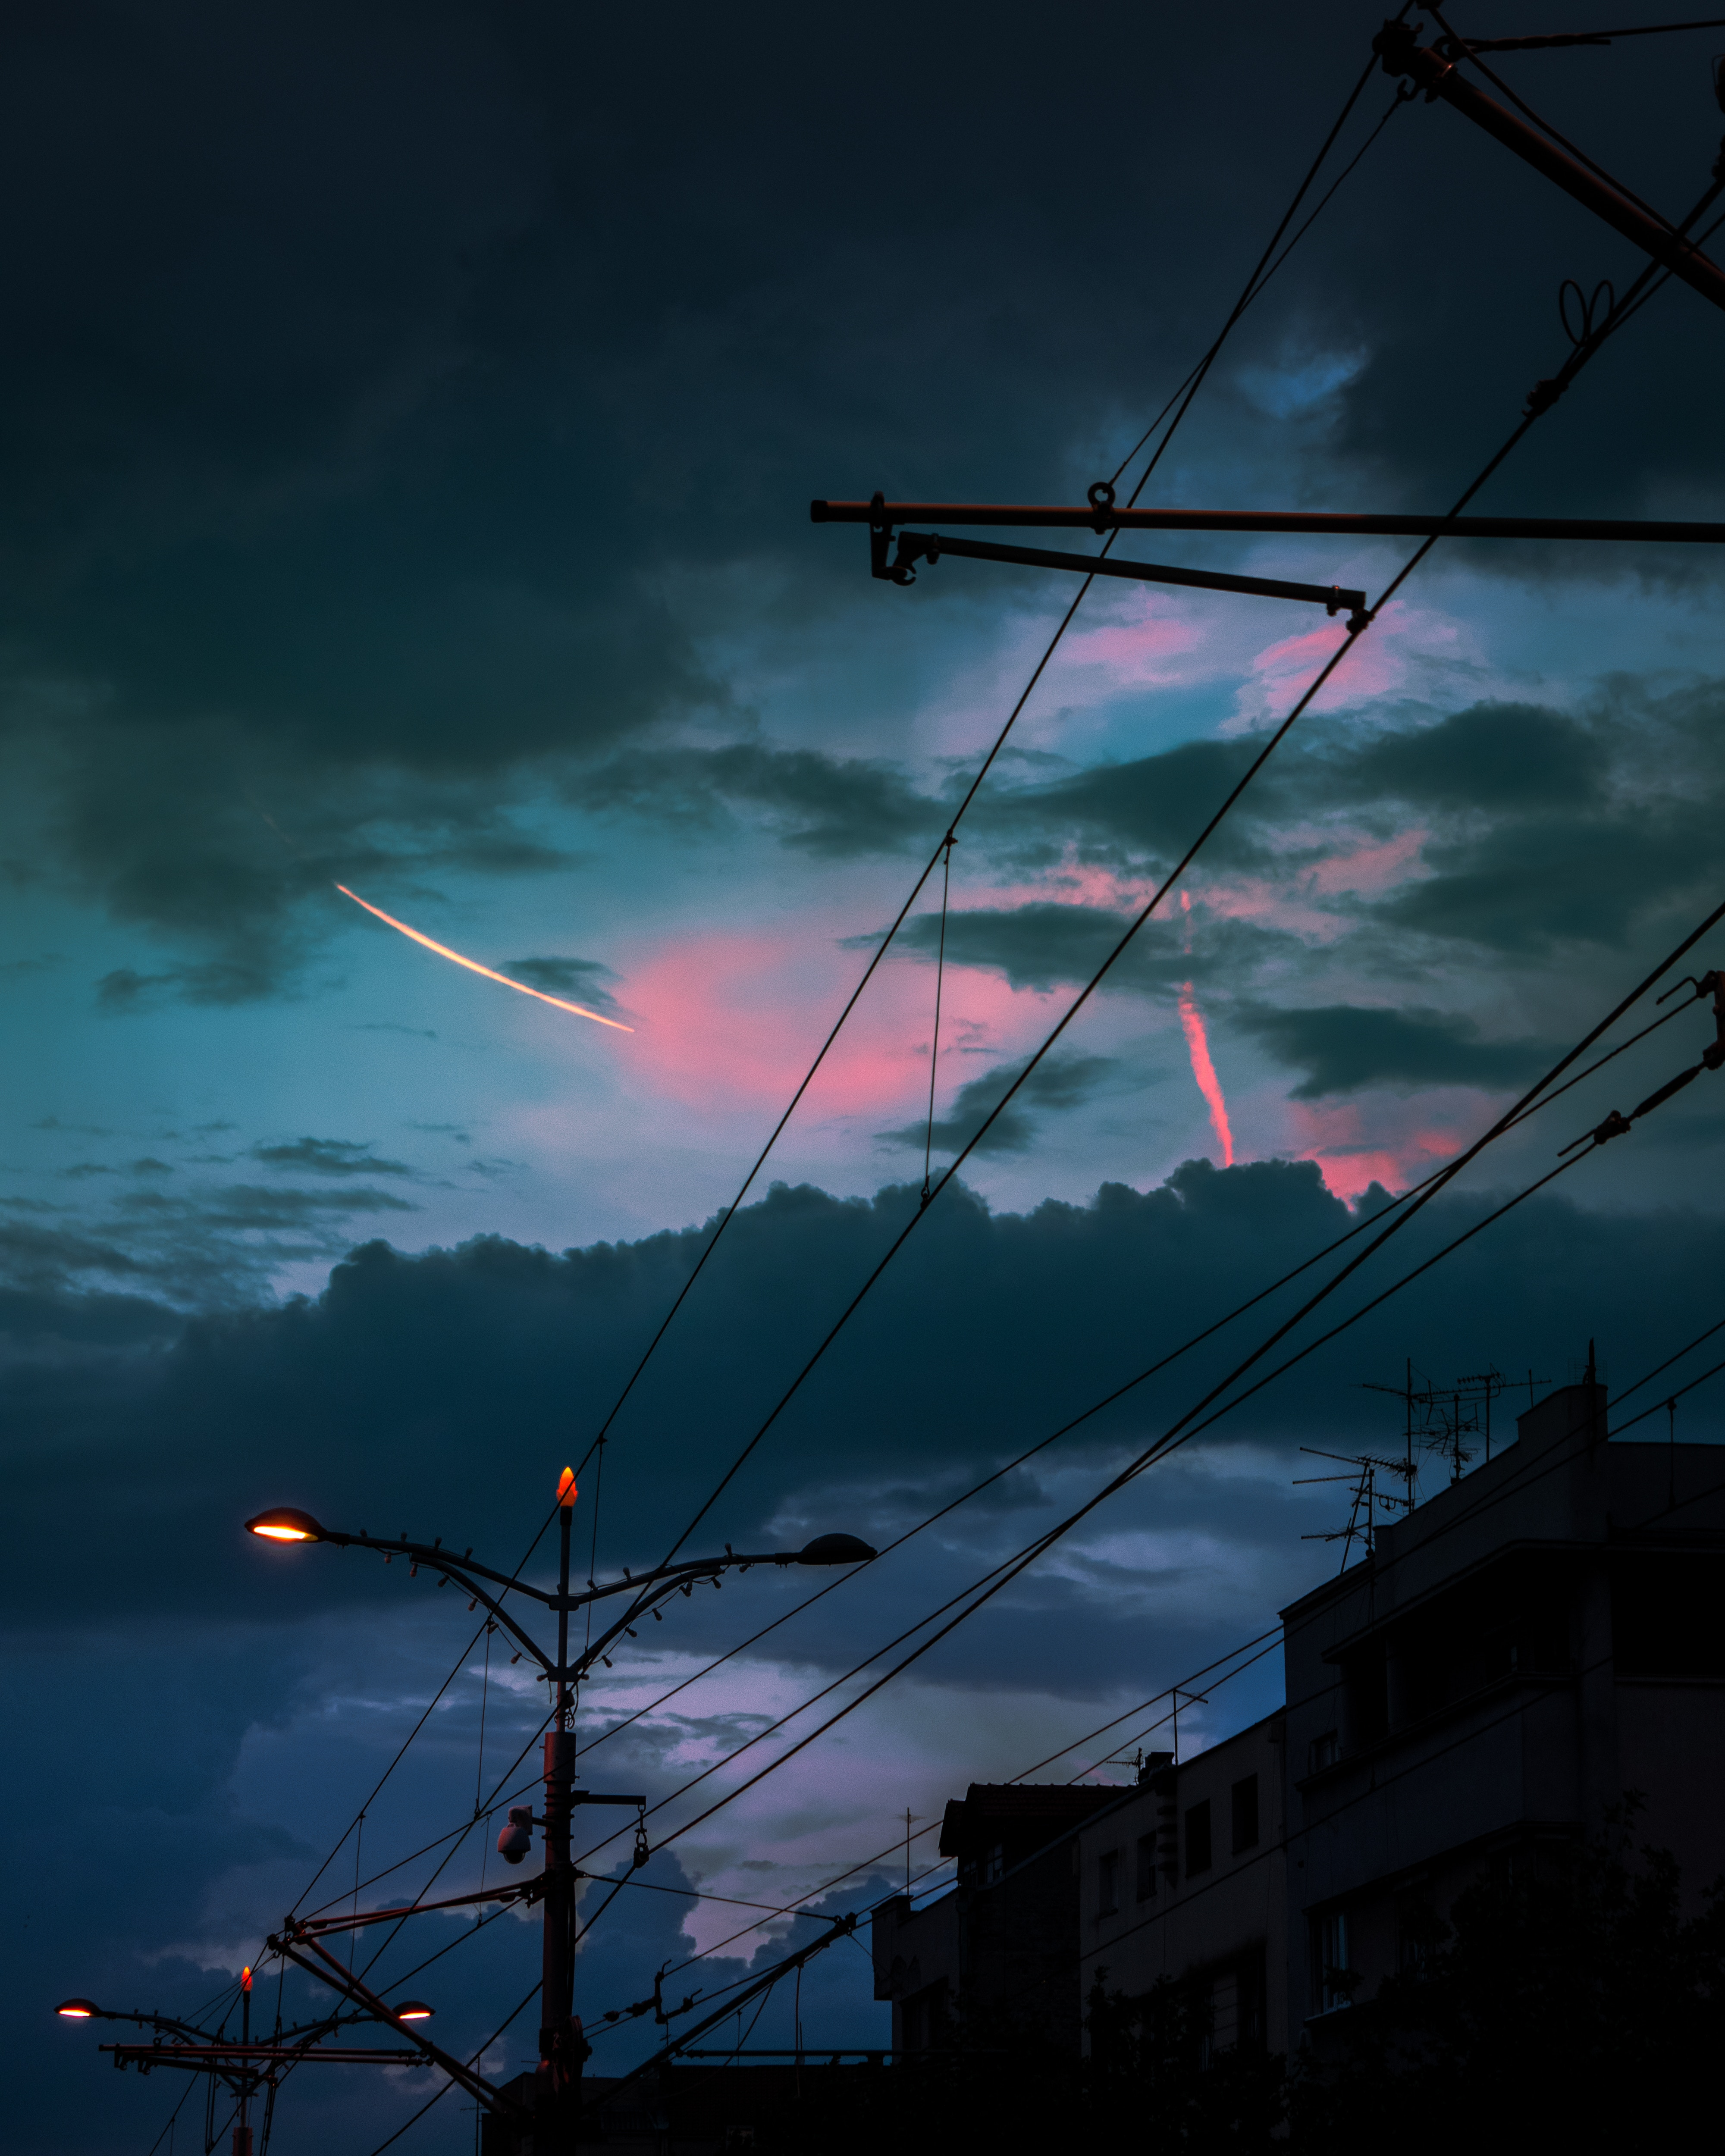 152588 download wallpaper Dark, Twilight, City, Lights, Lanterns, Dusk, Pillars, Posts, Wires, Wire screensavers and pictures for free